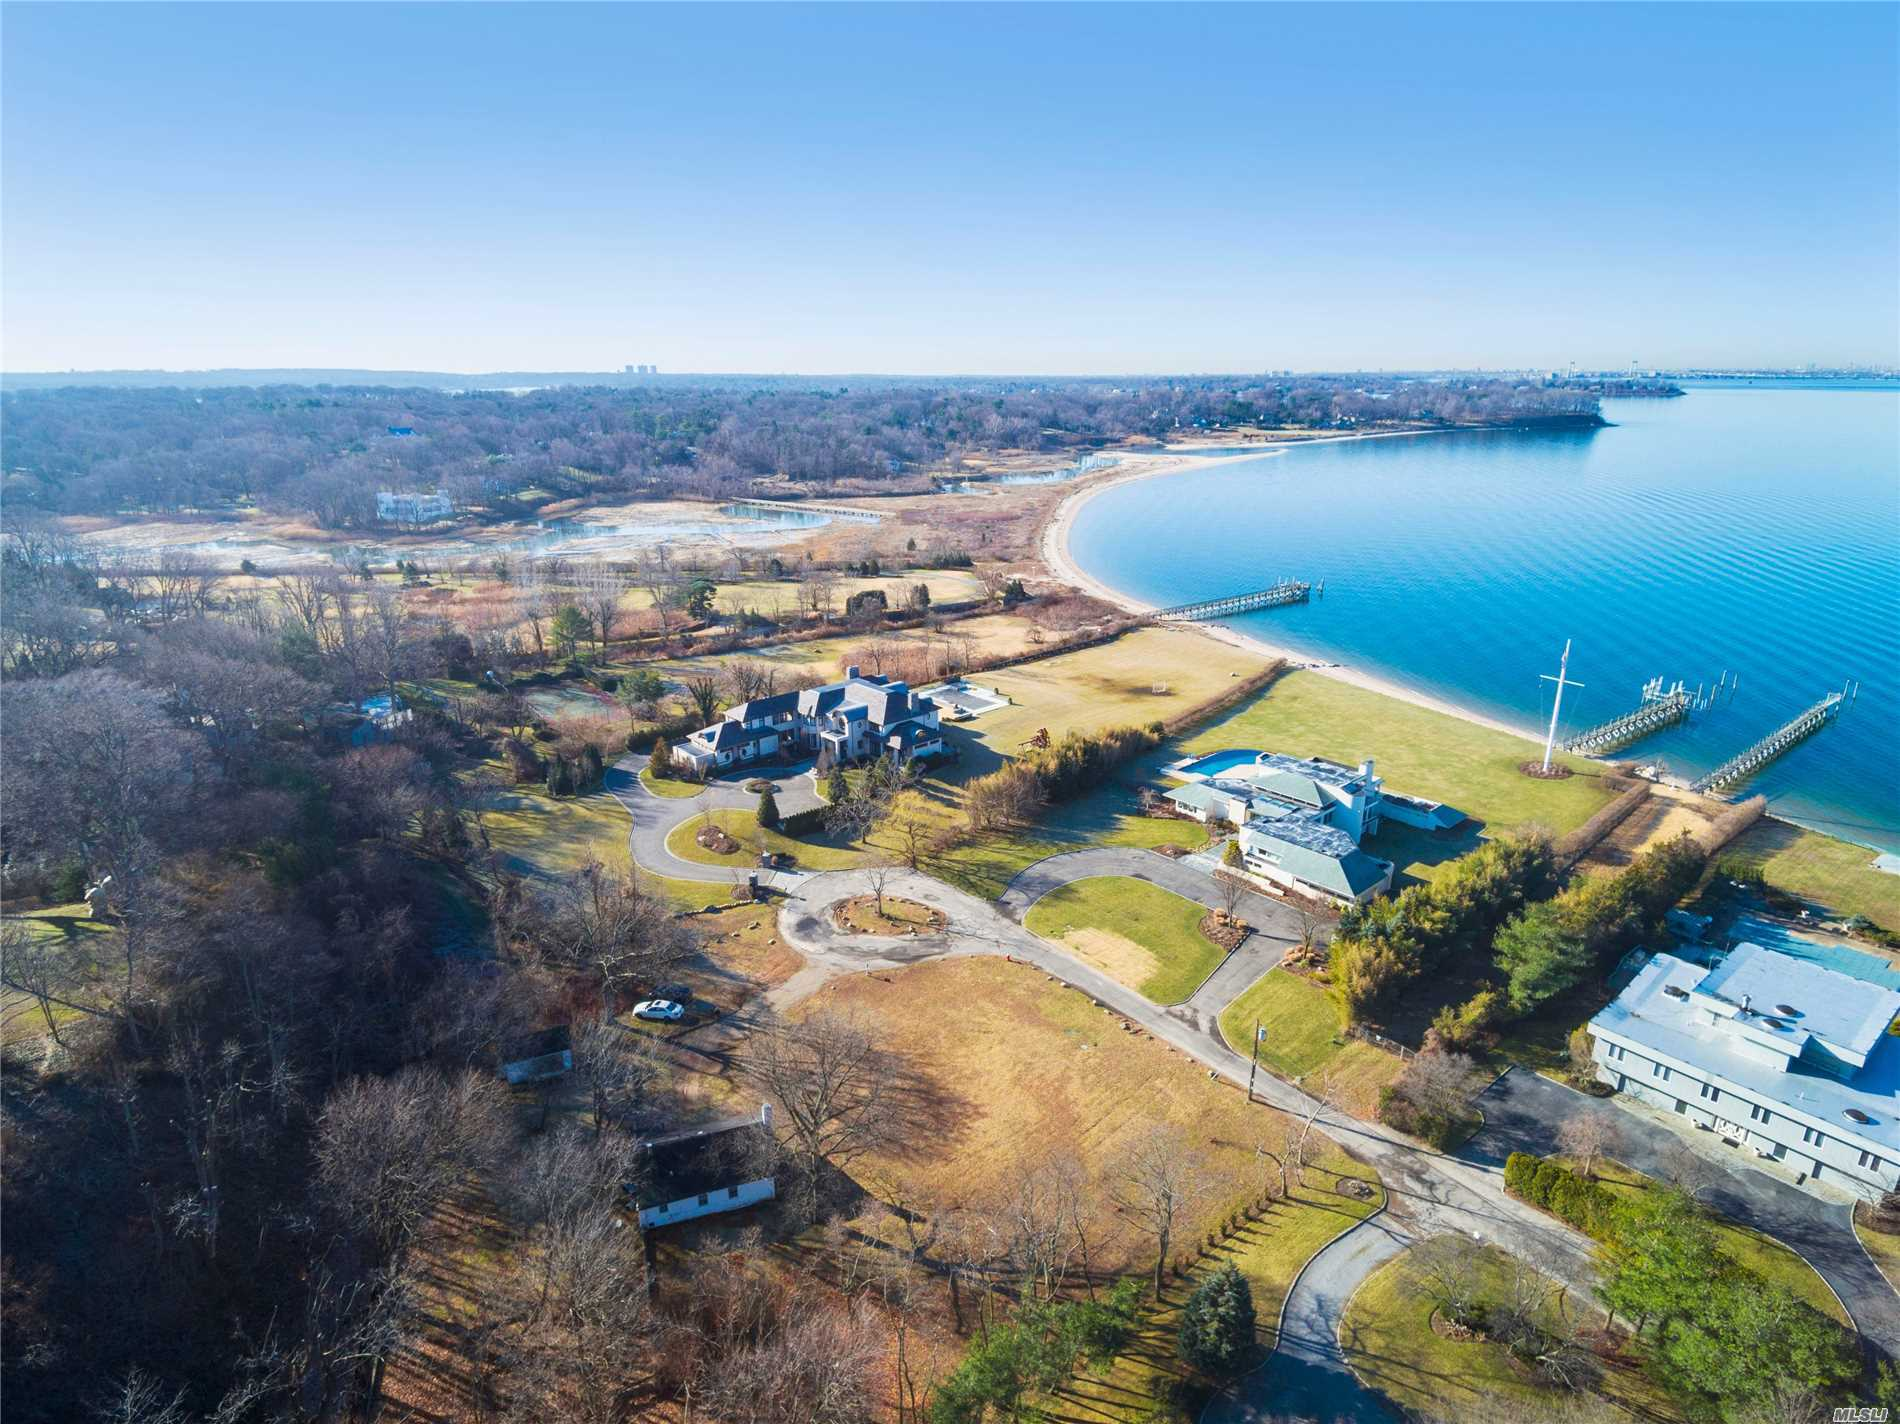 1.2 Acre Approved Building Lot In Prestigious Village Of Sands Point On A Quite Private Street Lined By Multi-Million Dollar Homes. Unique Property Has The Opportunity To Obtain Spectacular Nyc Skyline, Water, Spectacular Bridges, And Sunset Views. Includes A Permanent Easement To A Serene Mile Long Private Beach. Cottage On Property Sold As Is.